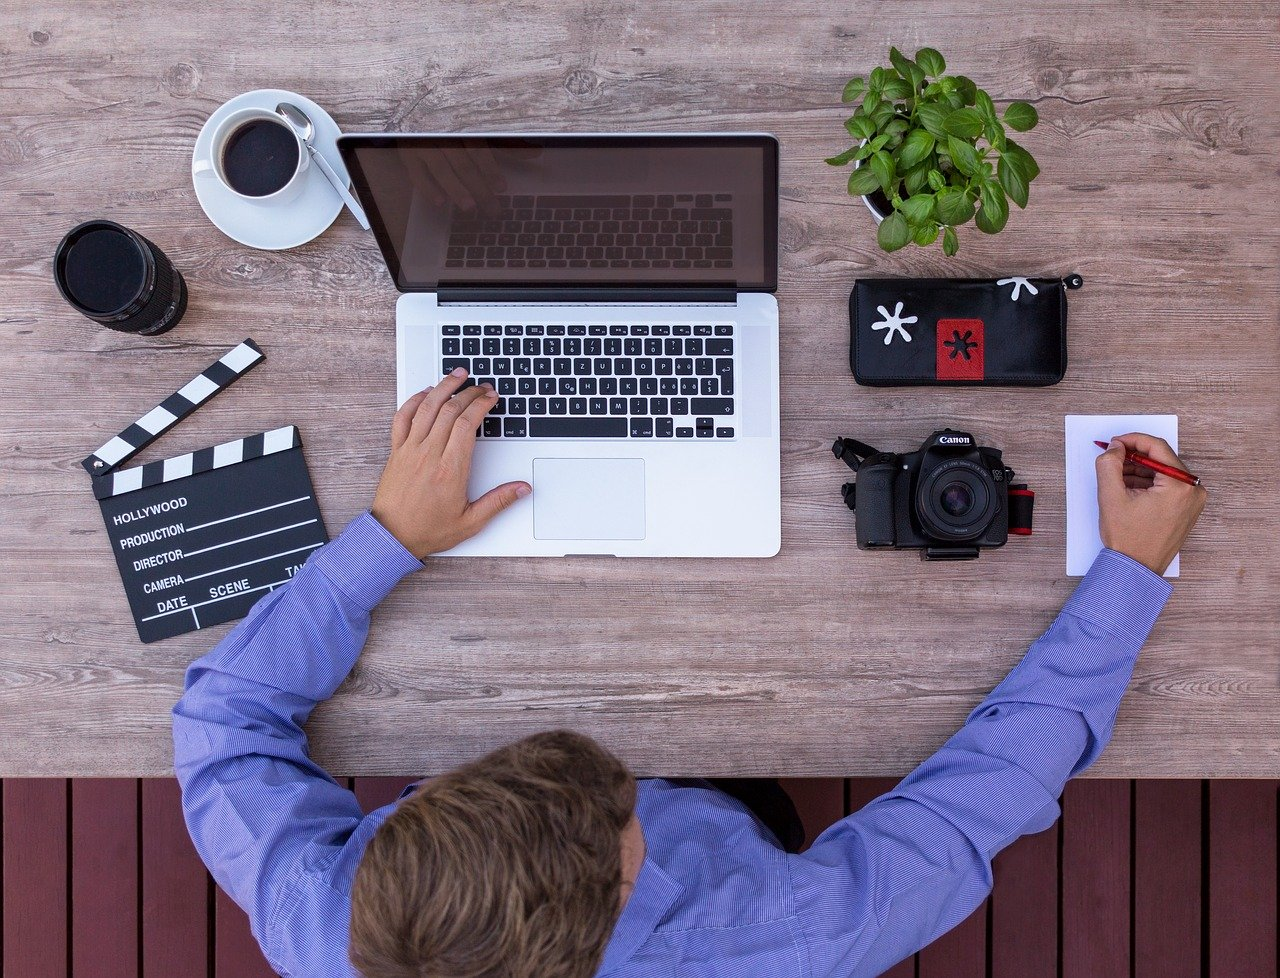 How to edit a youtube video that's not yours